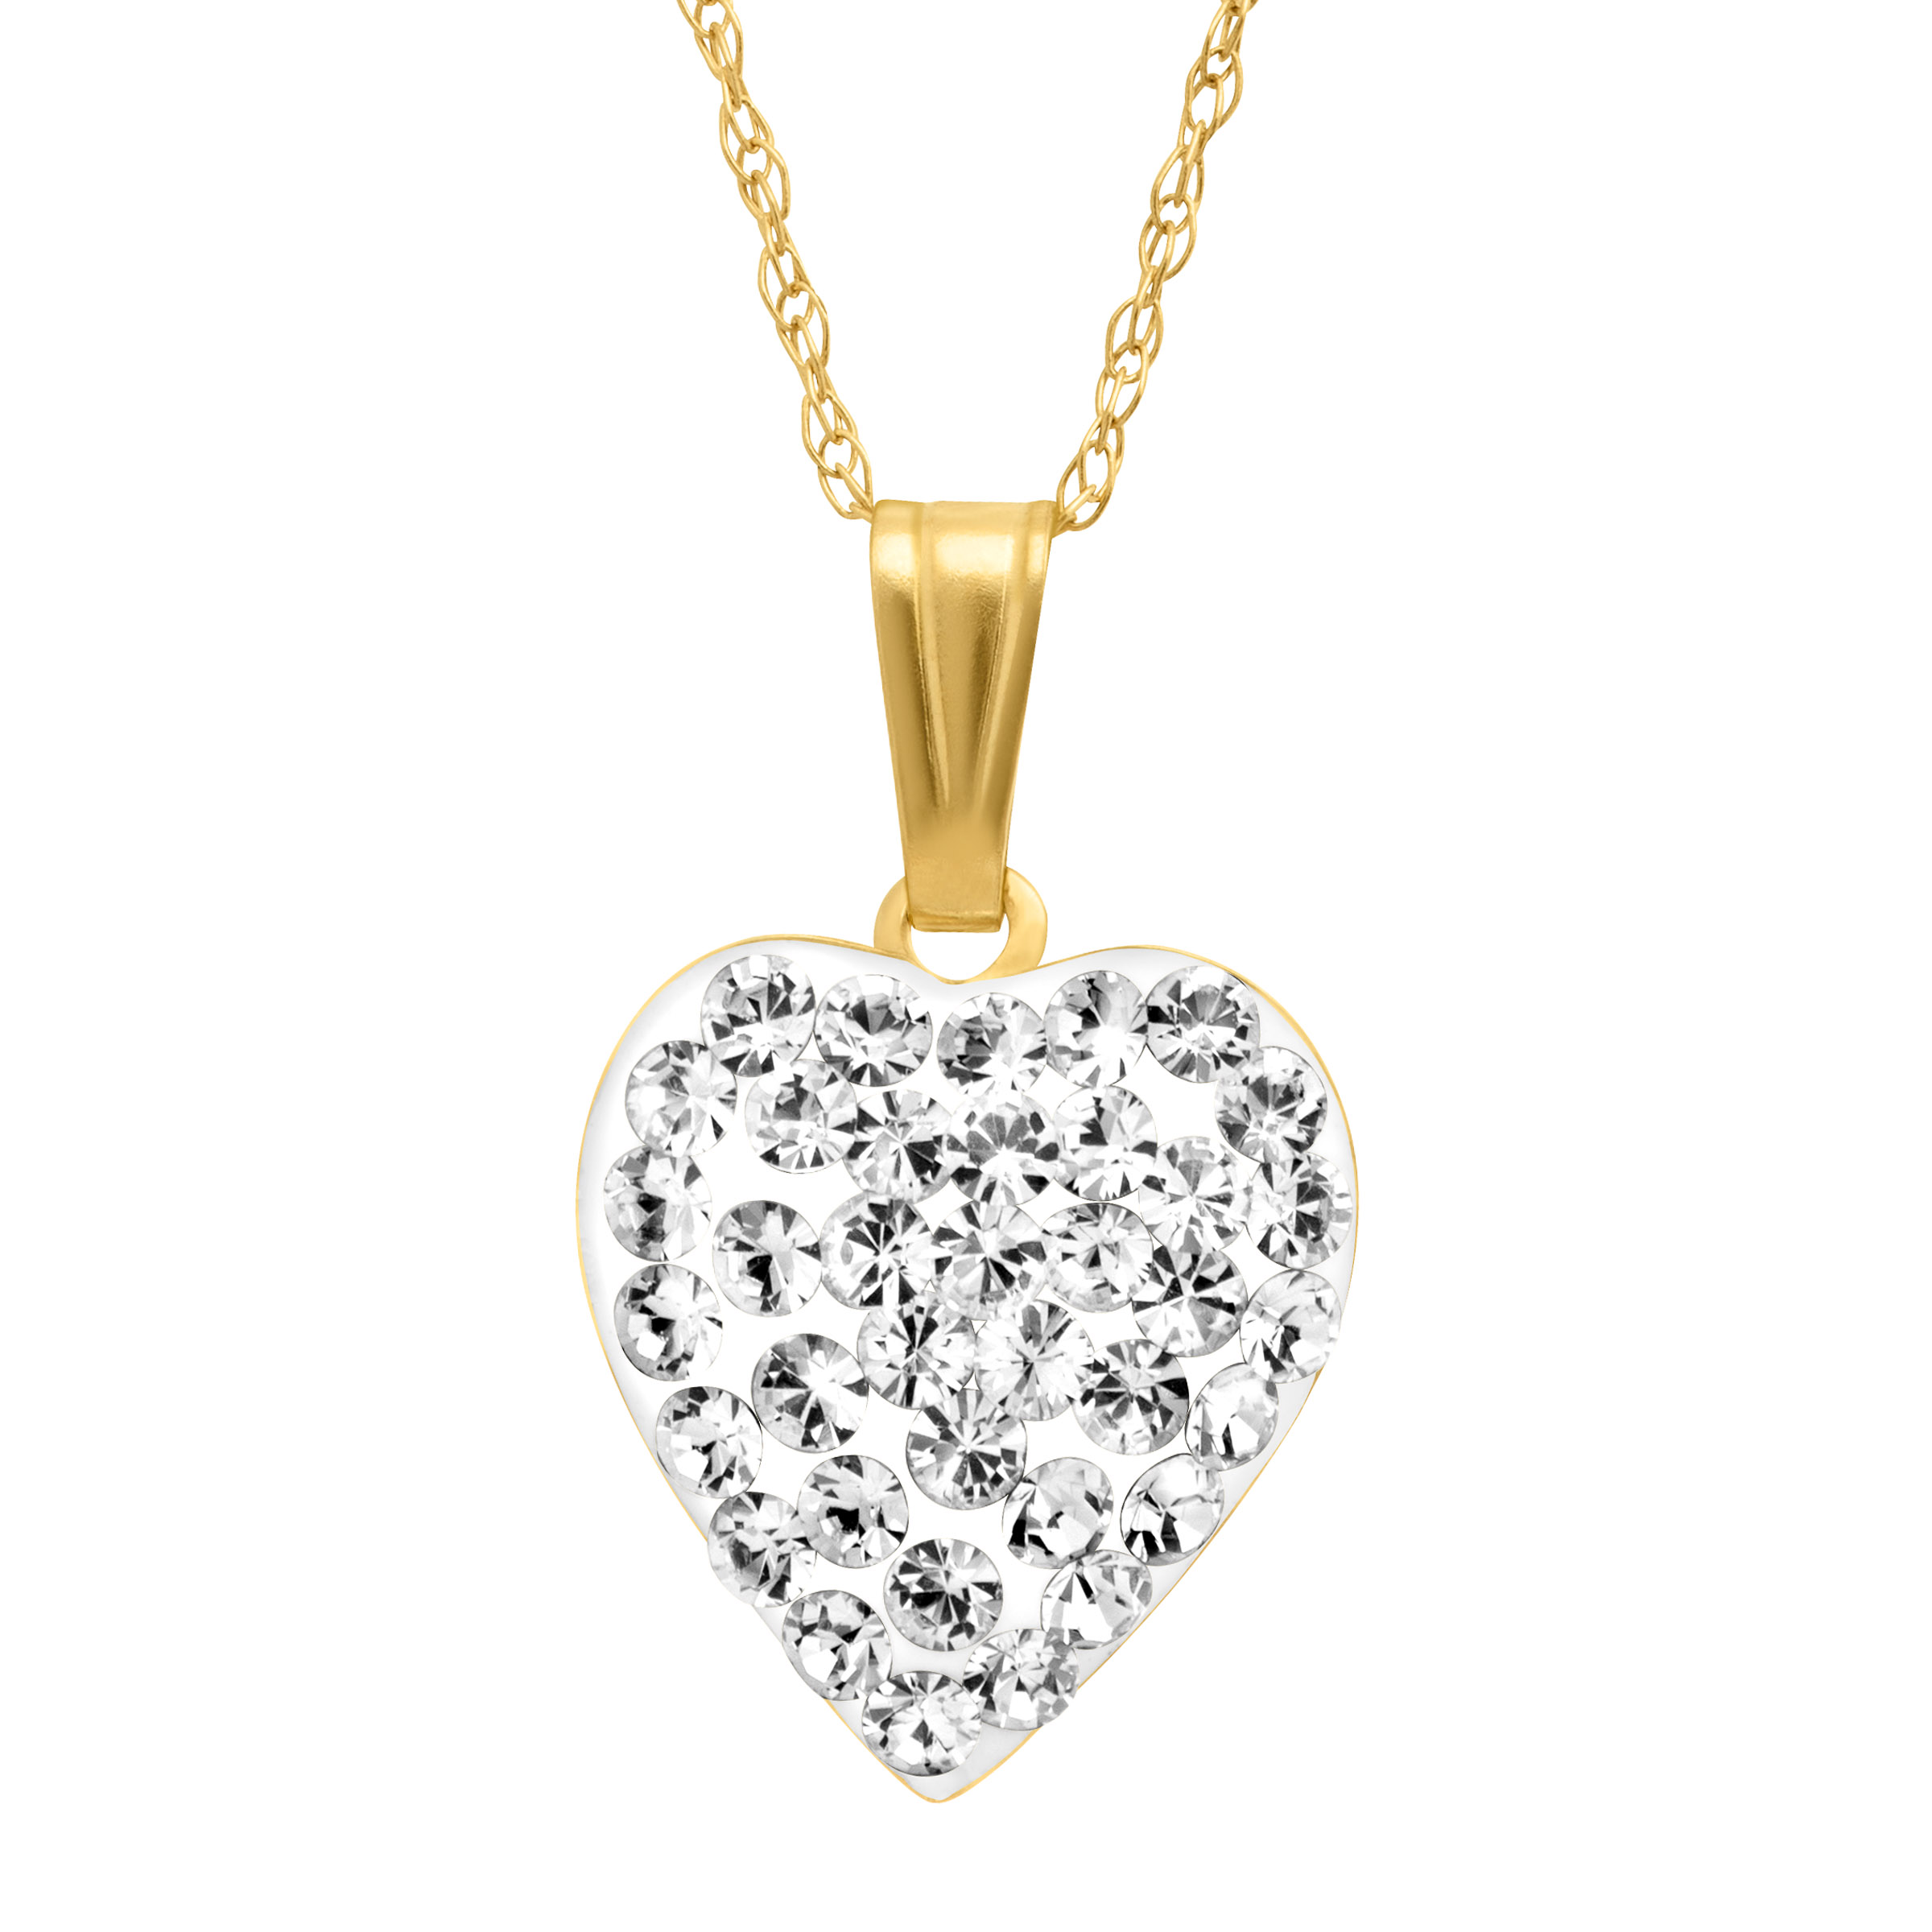 Crystaluxe Puffed Heart Pendant Necklace with Swarovski Crystals in 14kt Gold